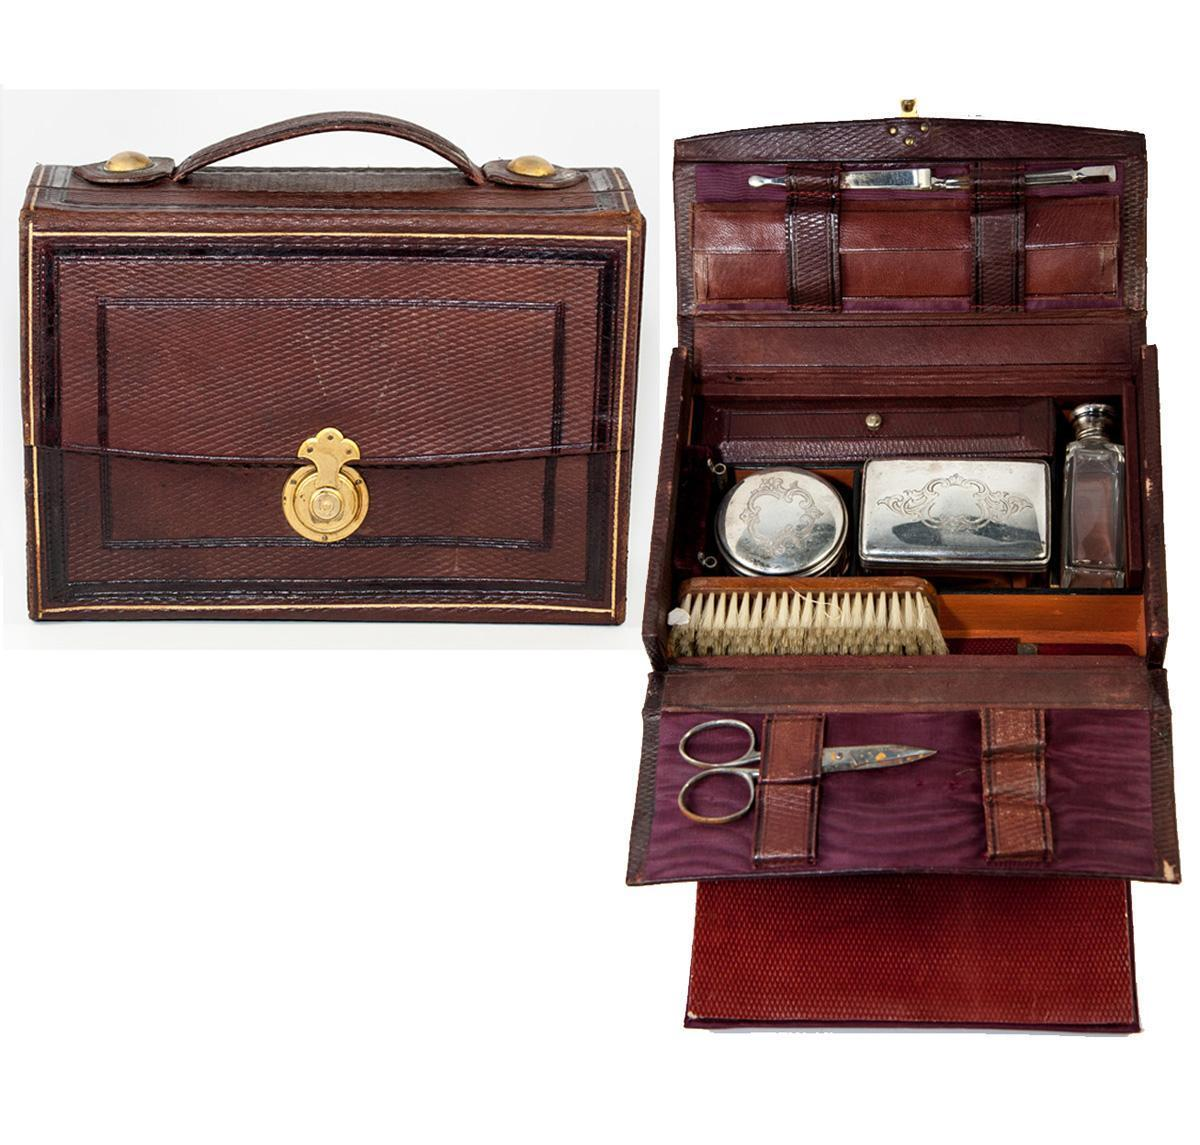 Antique French Grand Tour Travel Valet, Vanity Items in Leather Valise, Case, or Etui